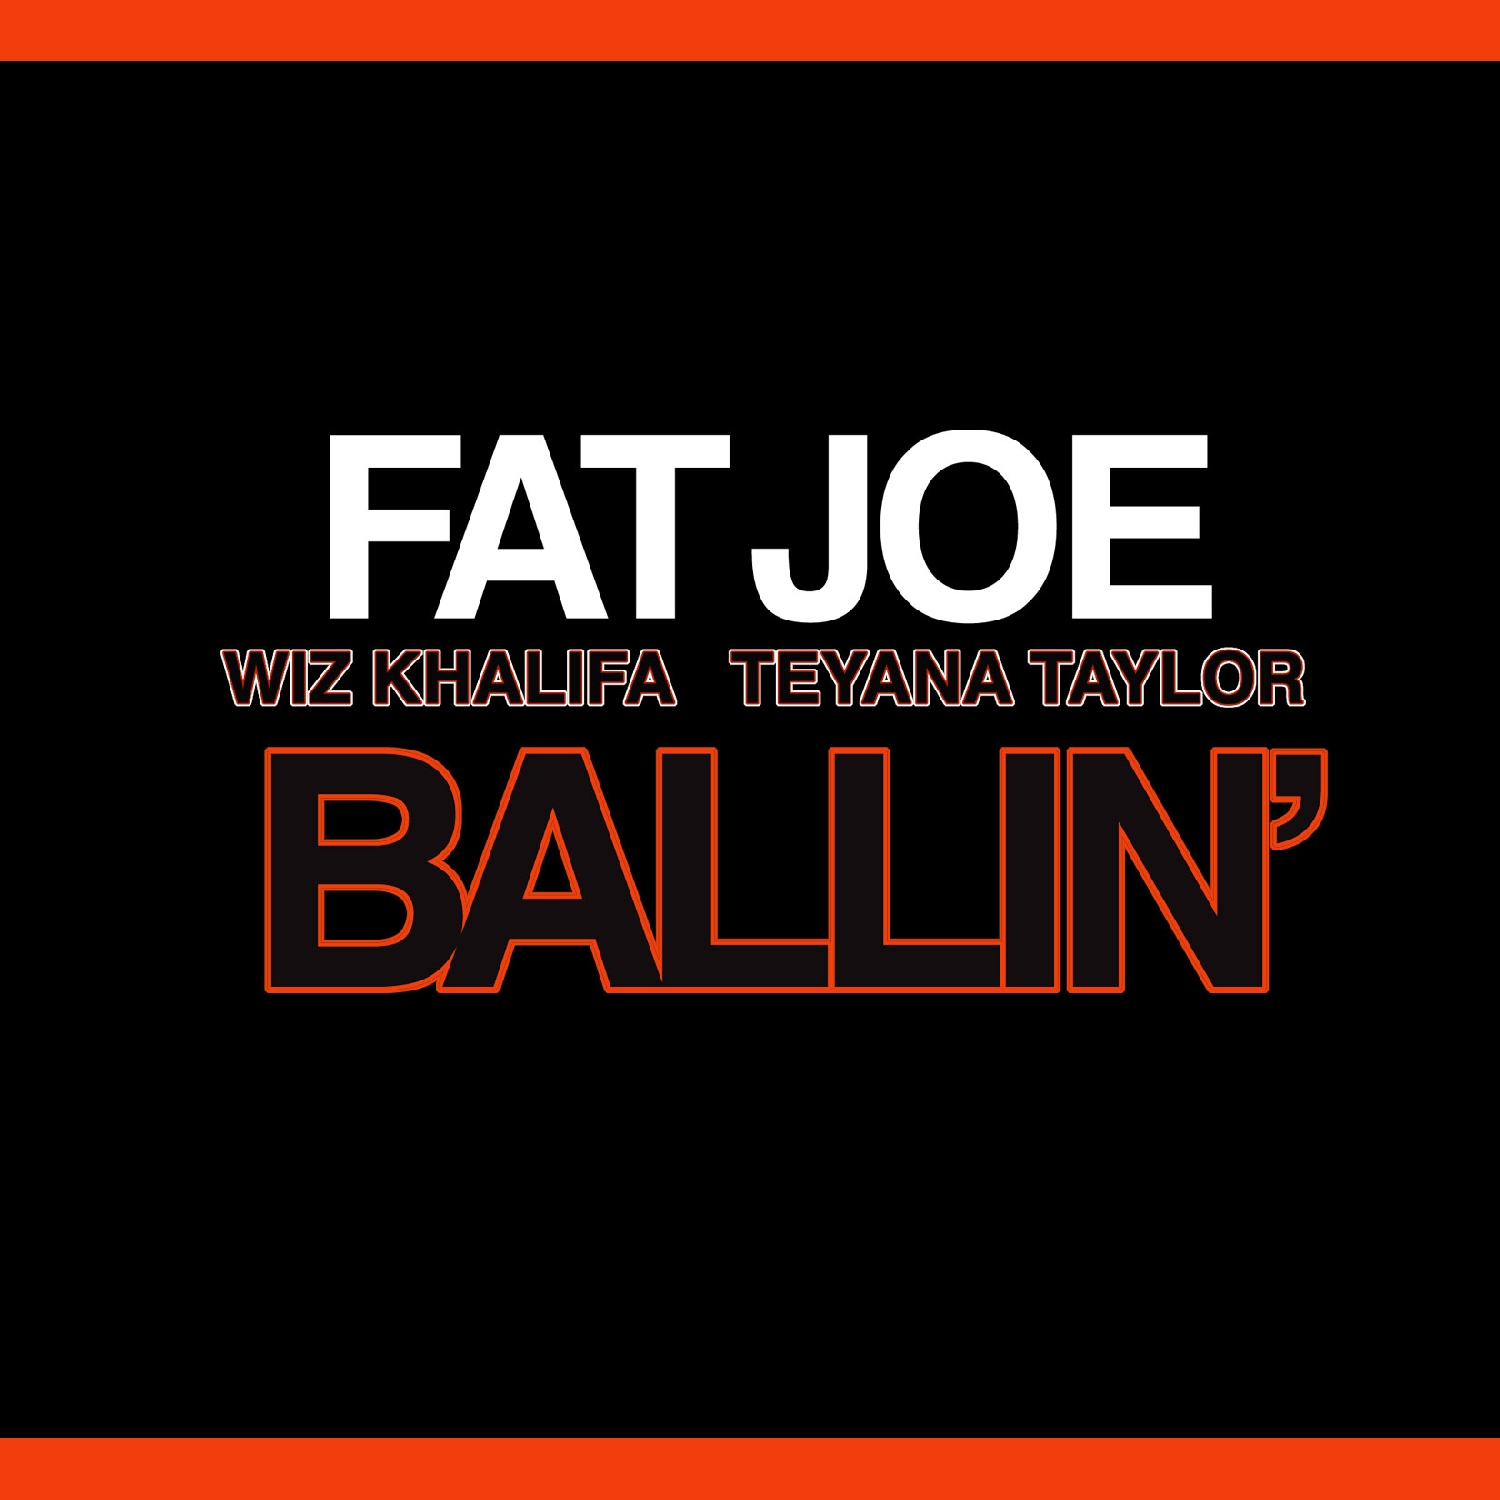 res1000x_FAT-JOE-BALLIN-2